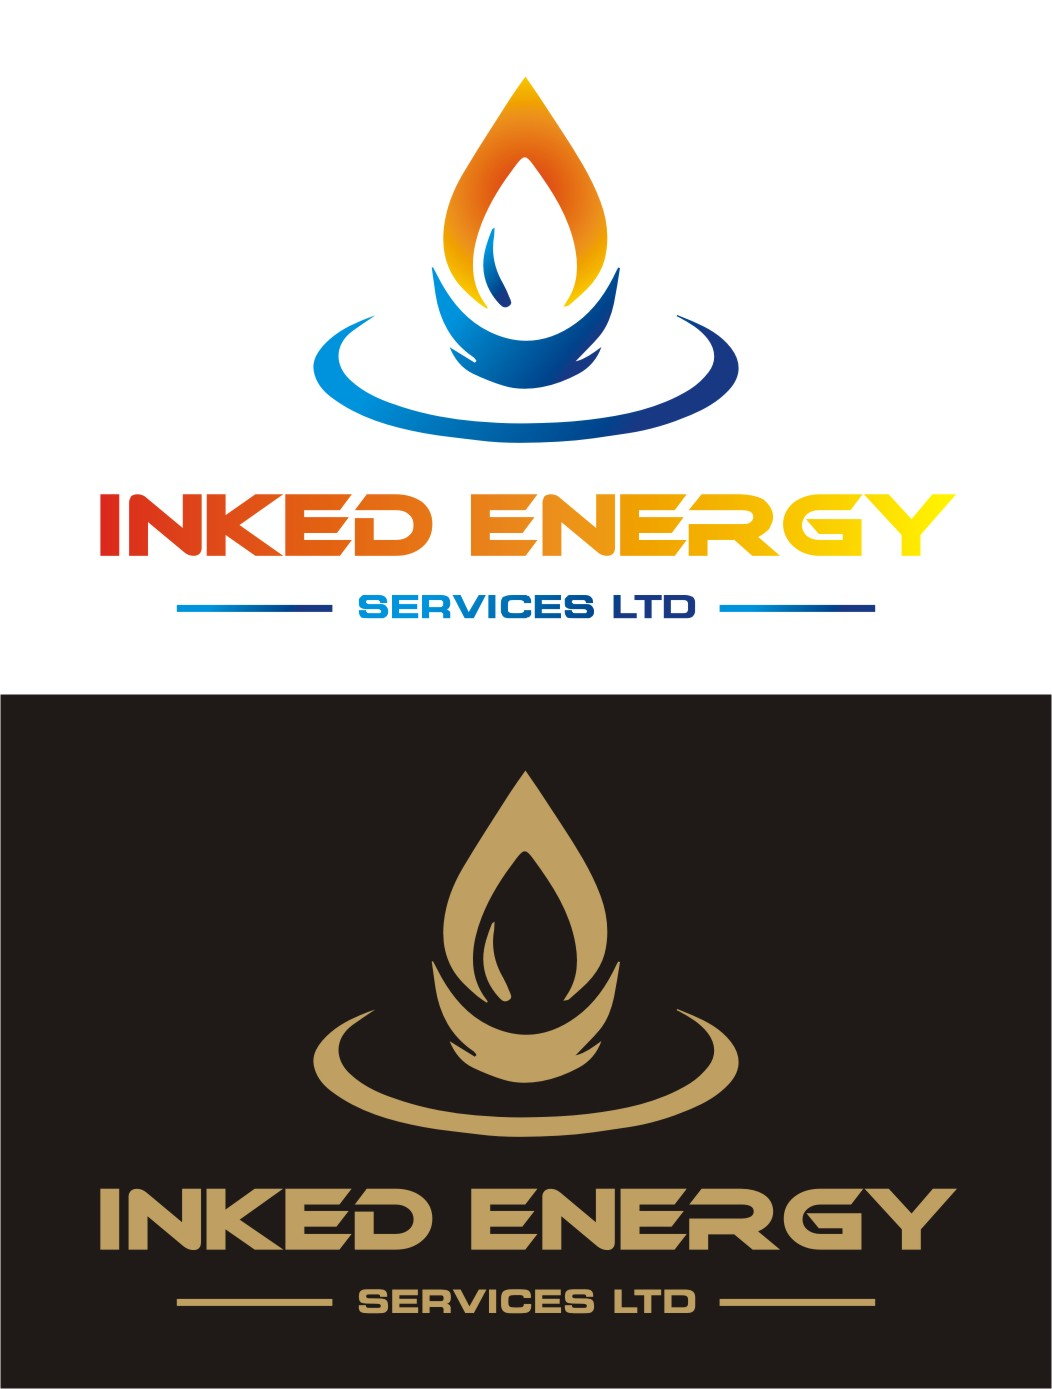 Logo Design by Spider Graphics - Entry No. 174 in the Logo Design Contest Creative Logo Design for INKED ENERGY SERVICES LTD.